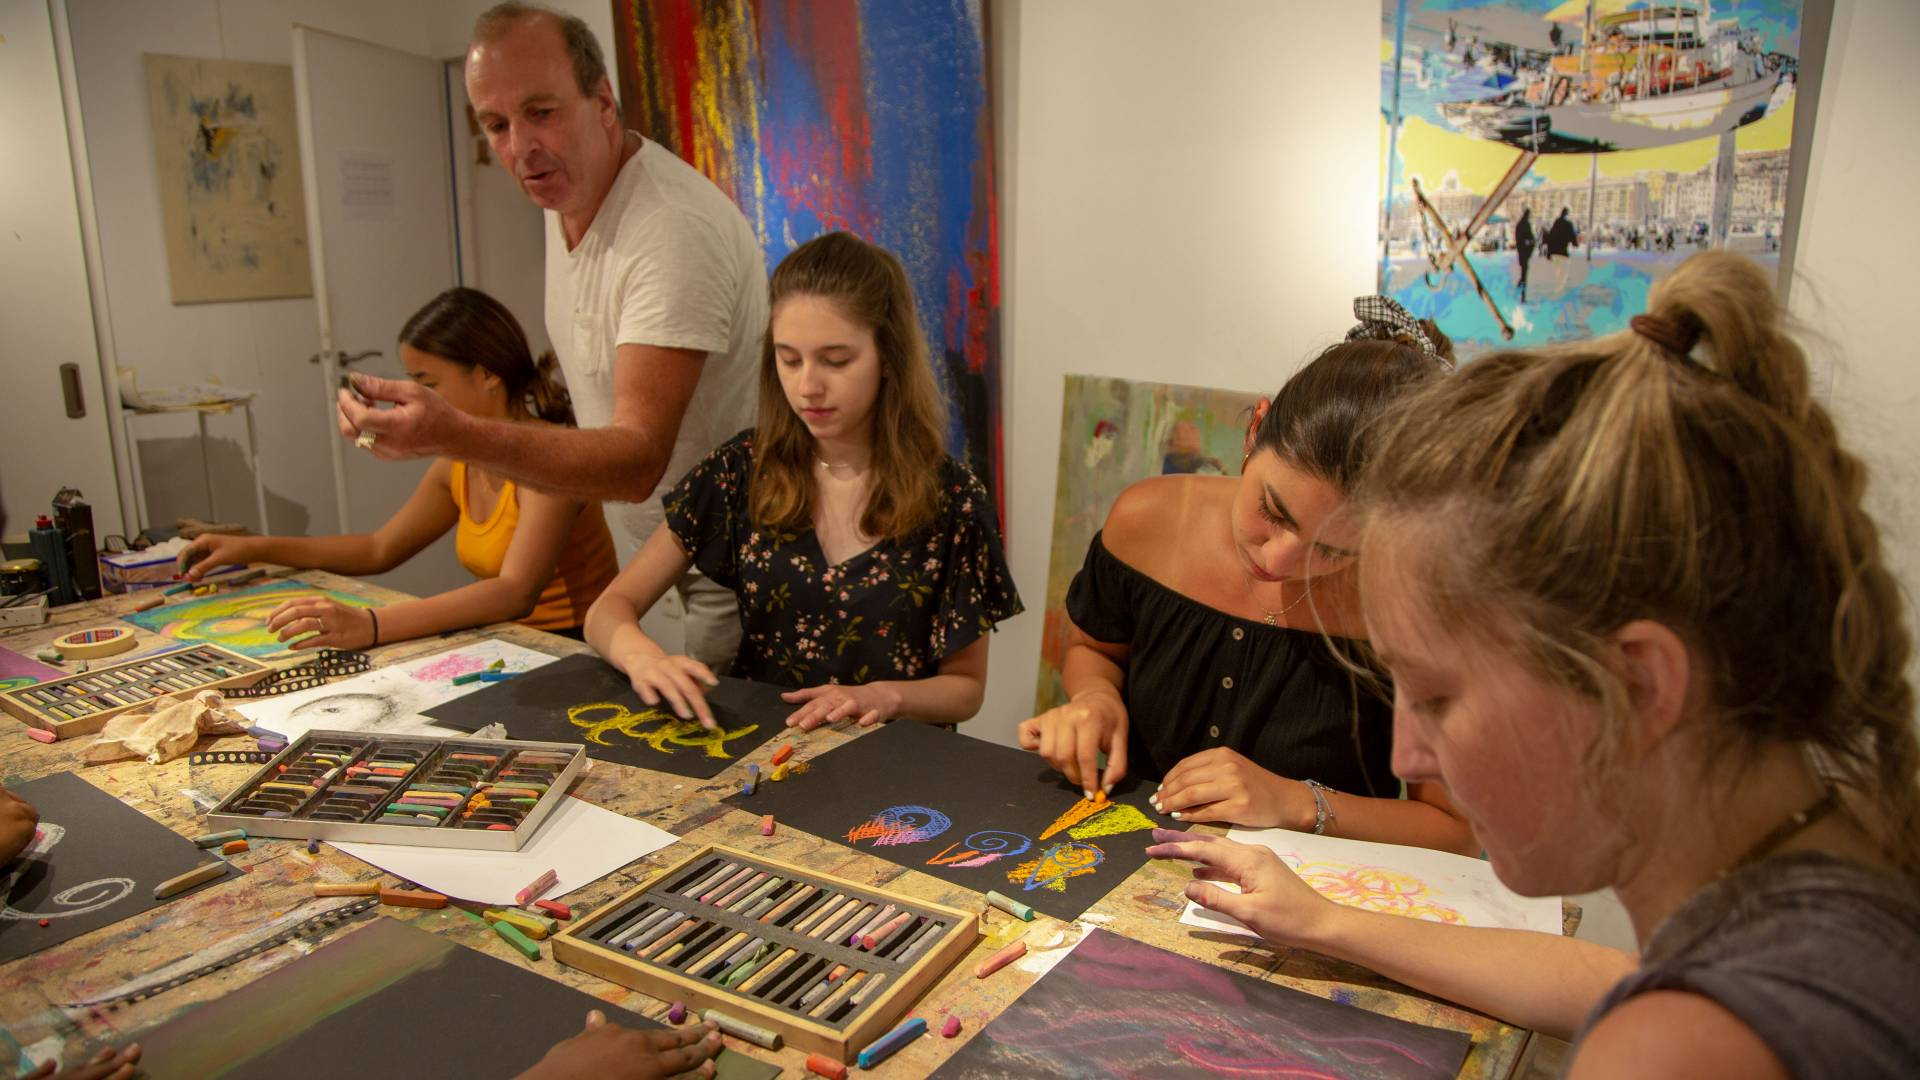 Students working on art projects with instructor in France